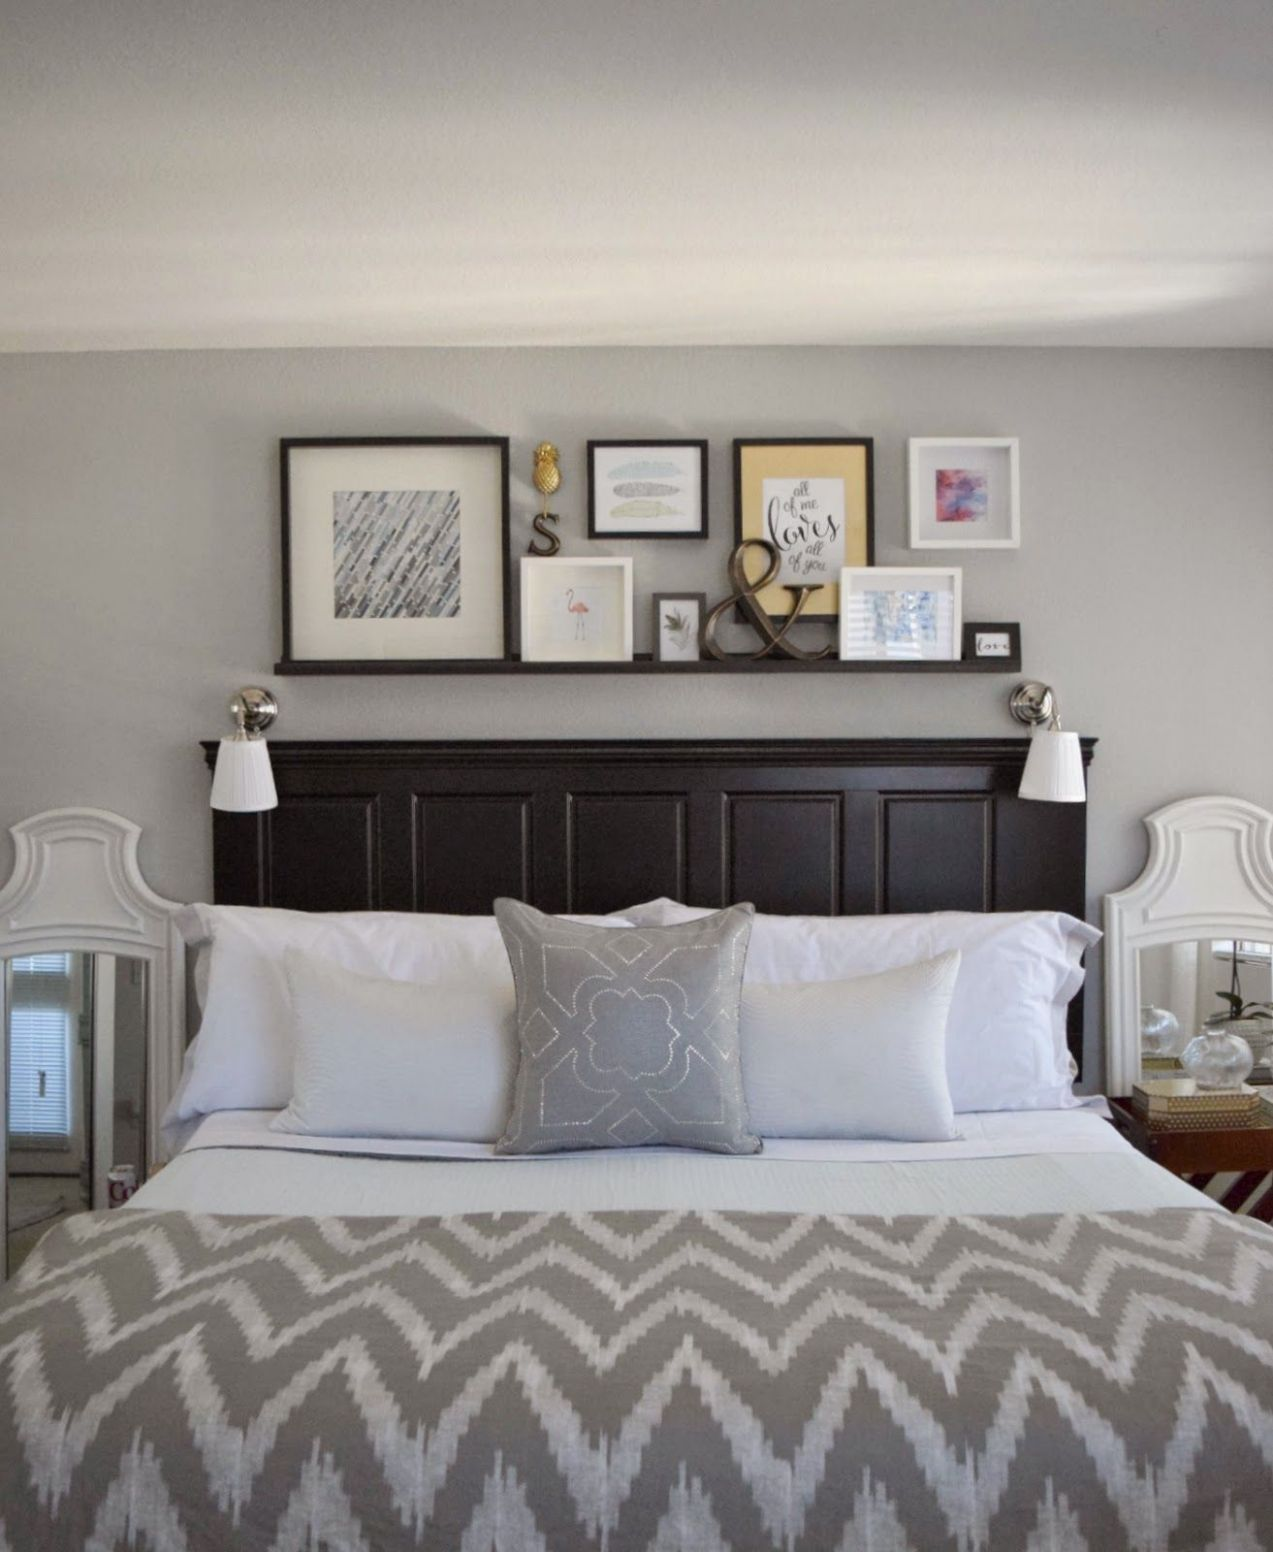 Hotel Bedding At Home | Bedroom wall decor above bed, Above bed ...